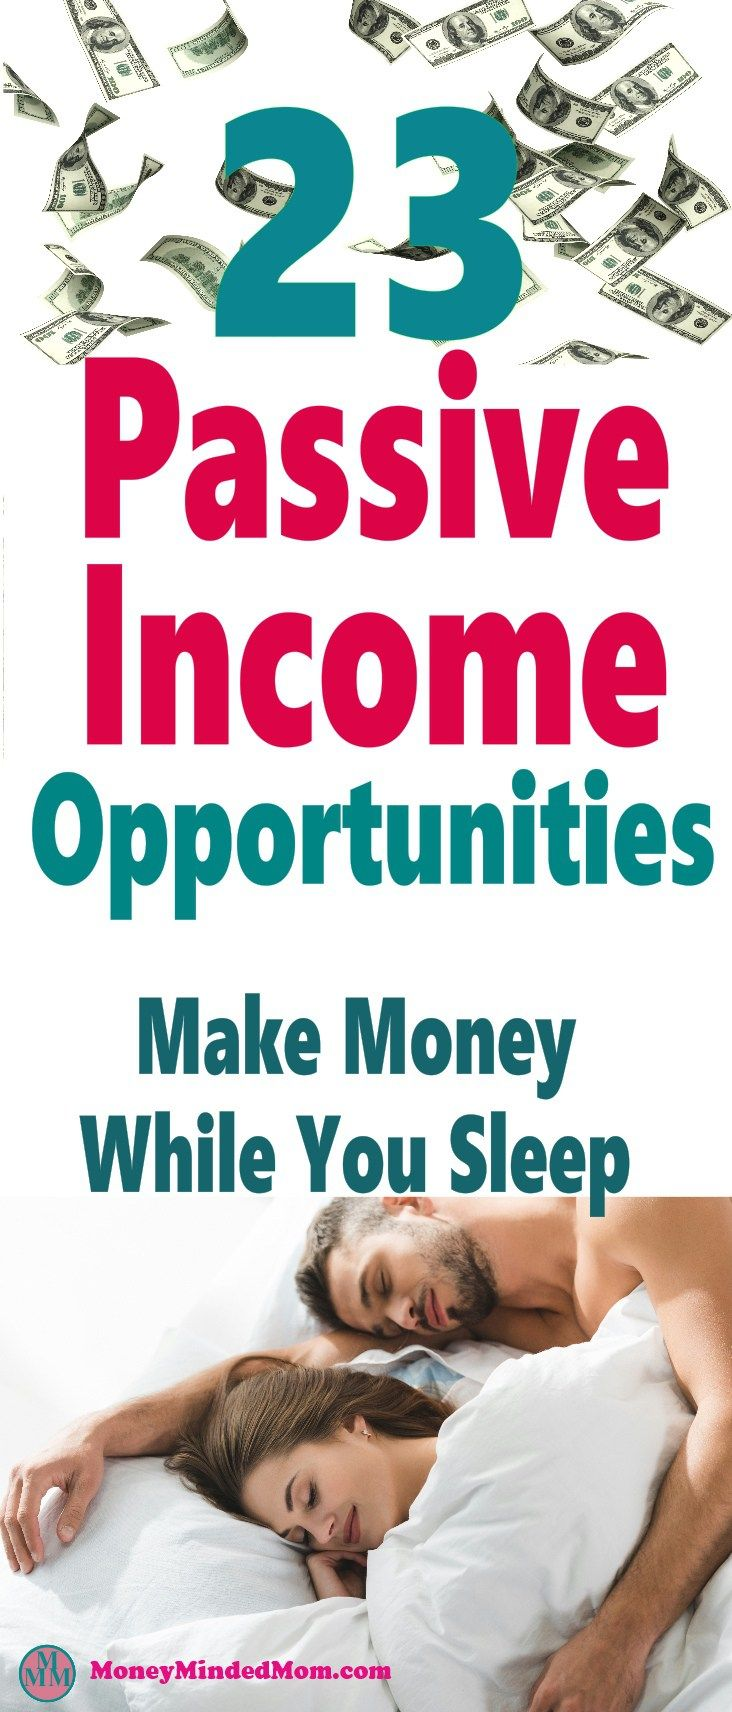 23 Passive Income Ideas To Make Easy Money While You Sleep Med Billeder Penge